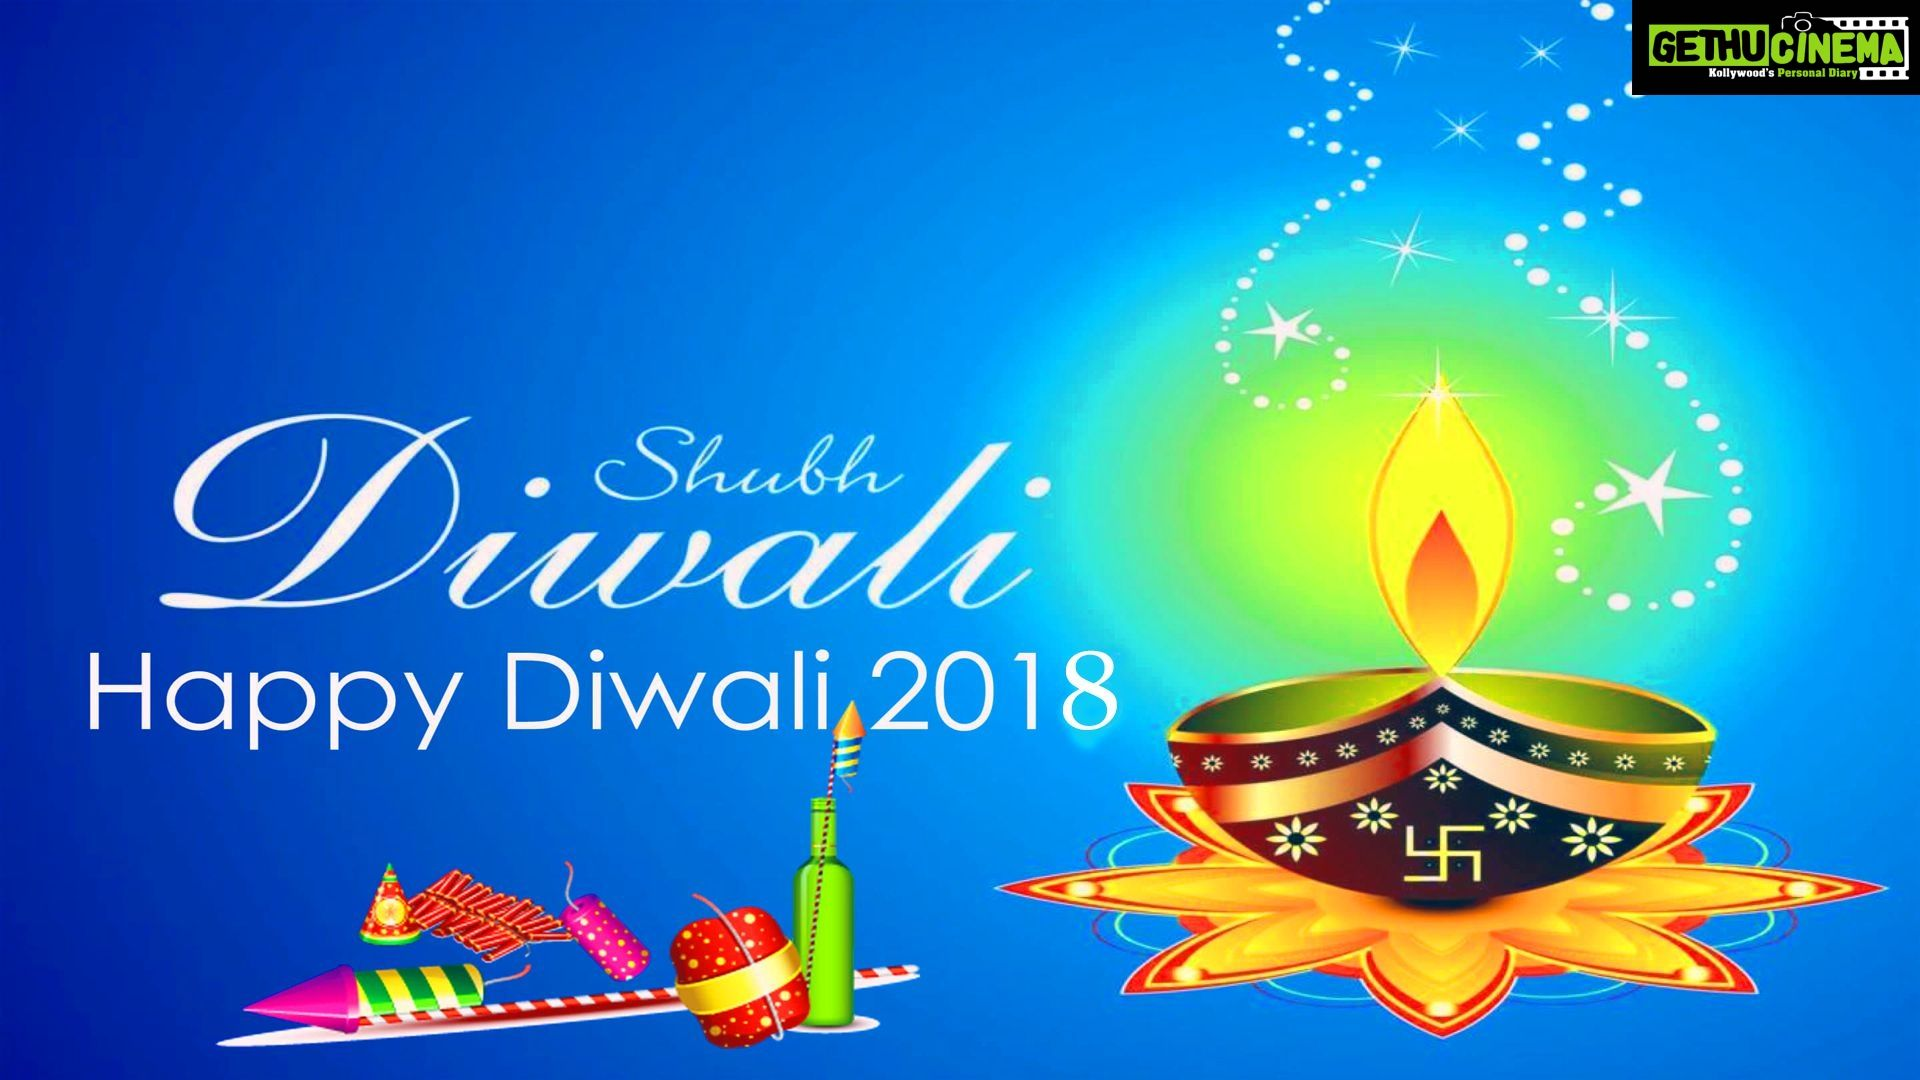 happy diwali images with beautiful hd pictures new diwali